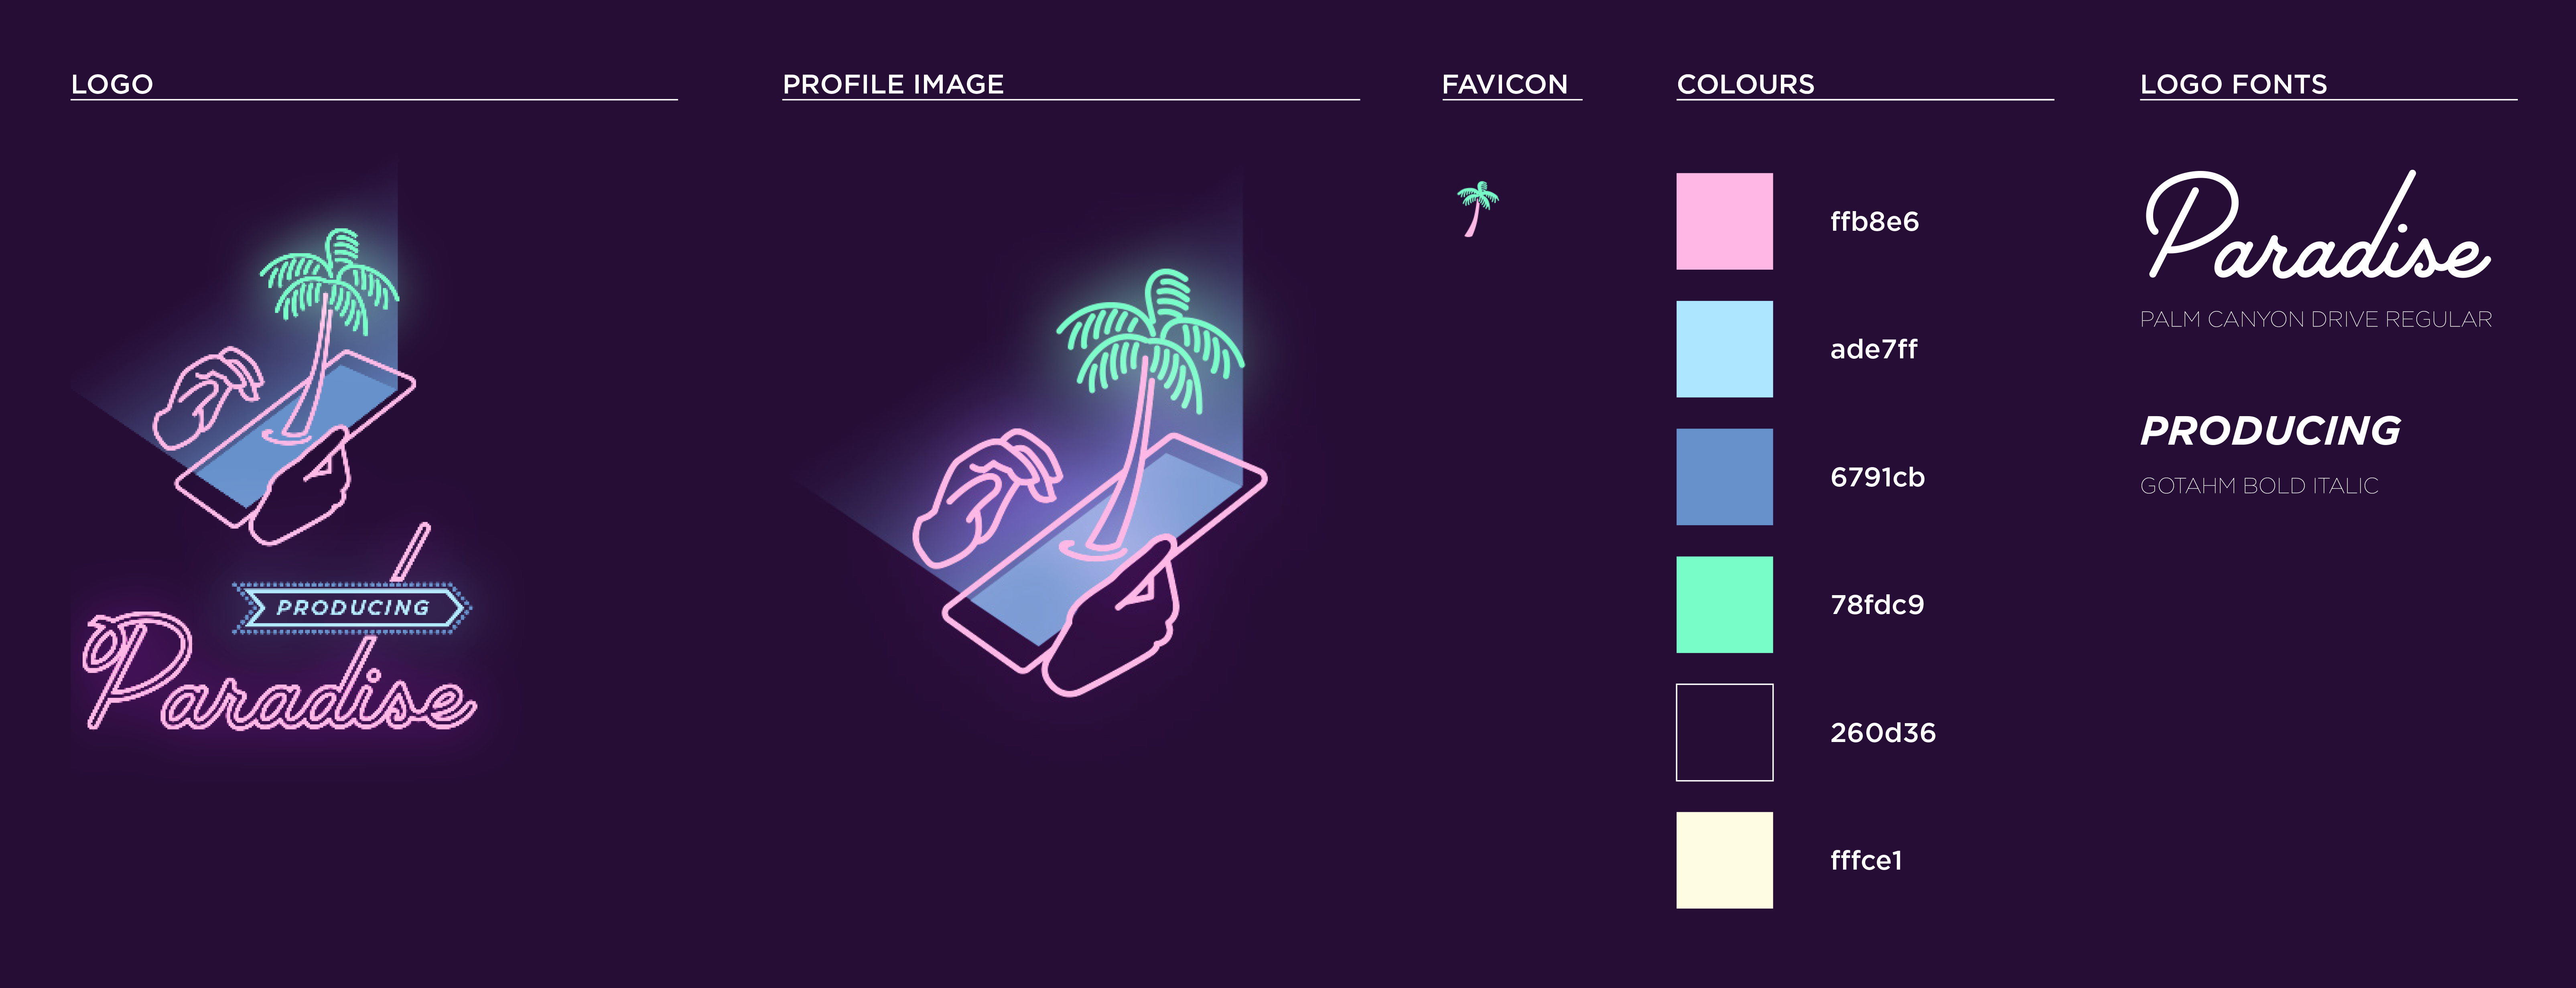 Screenshot of the Producing Paradise style guide showing logo, profile image, favicon, colours and fonts